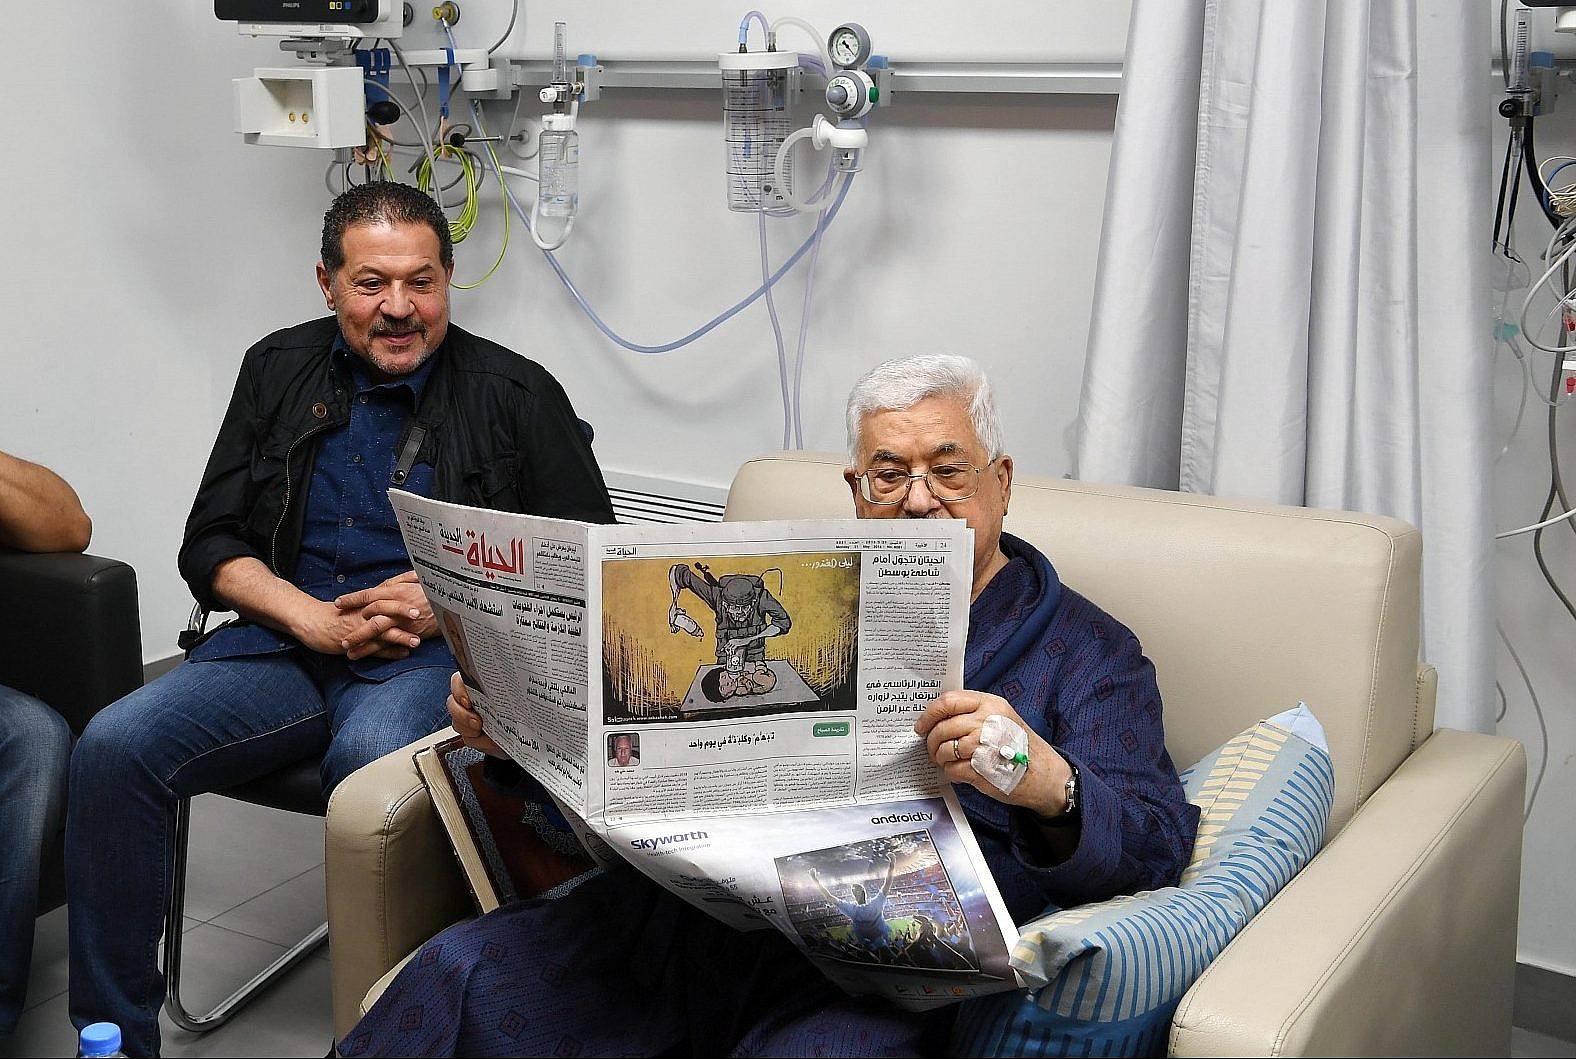 Palestinian Authority President Mahmoud Abbas shown recovering in hospital and reading a newspaper on the back page of which is a cartoon portraying an Israeli soldier poisoning a Palestinian baby